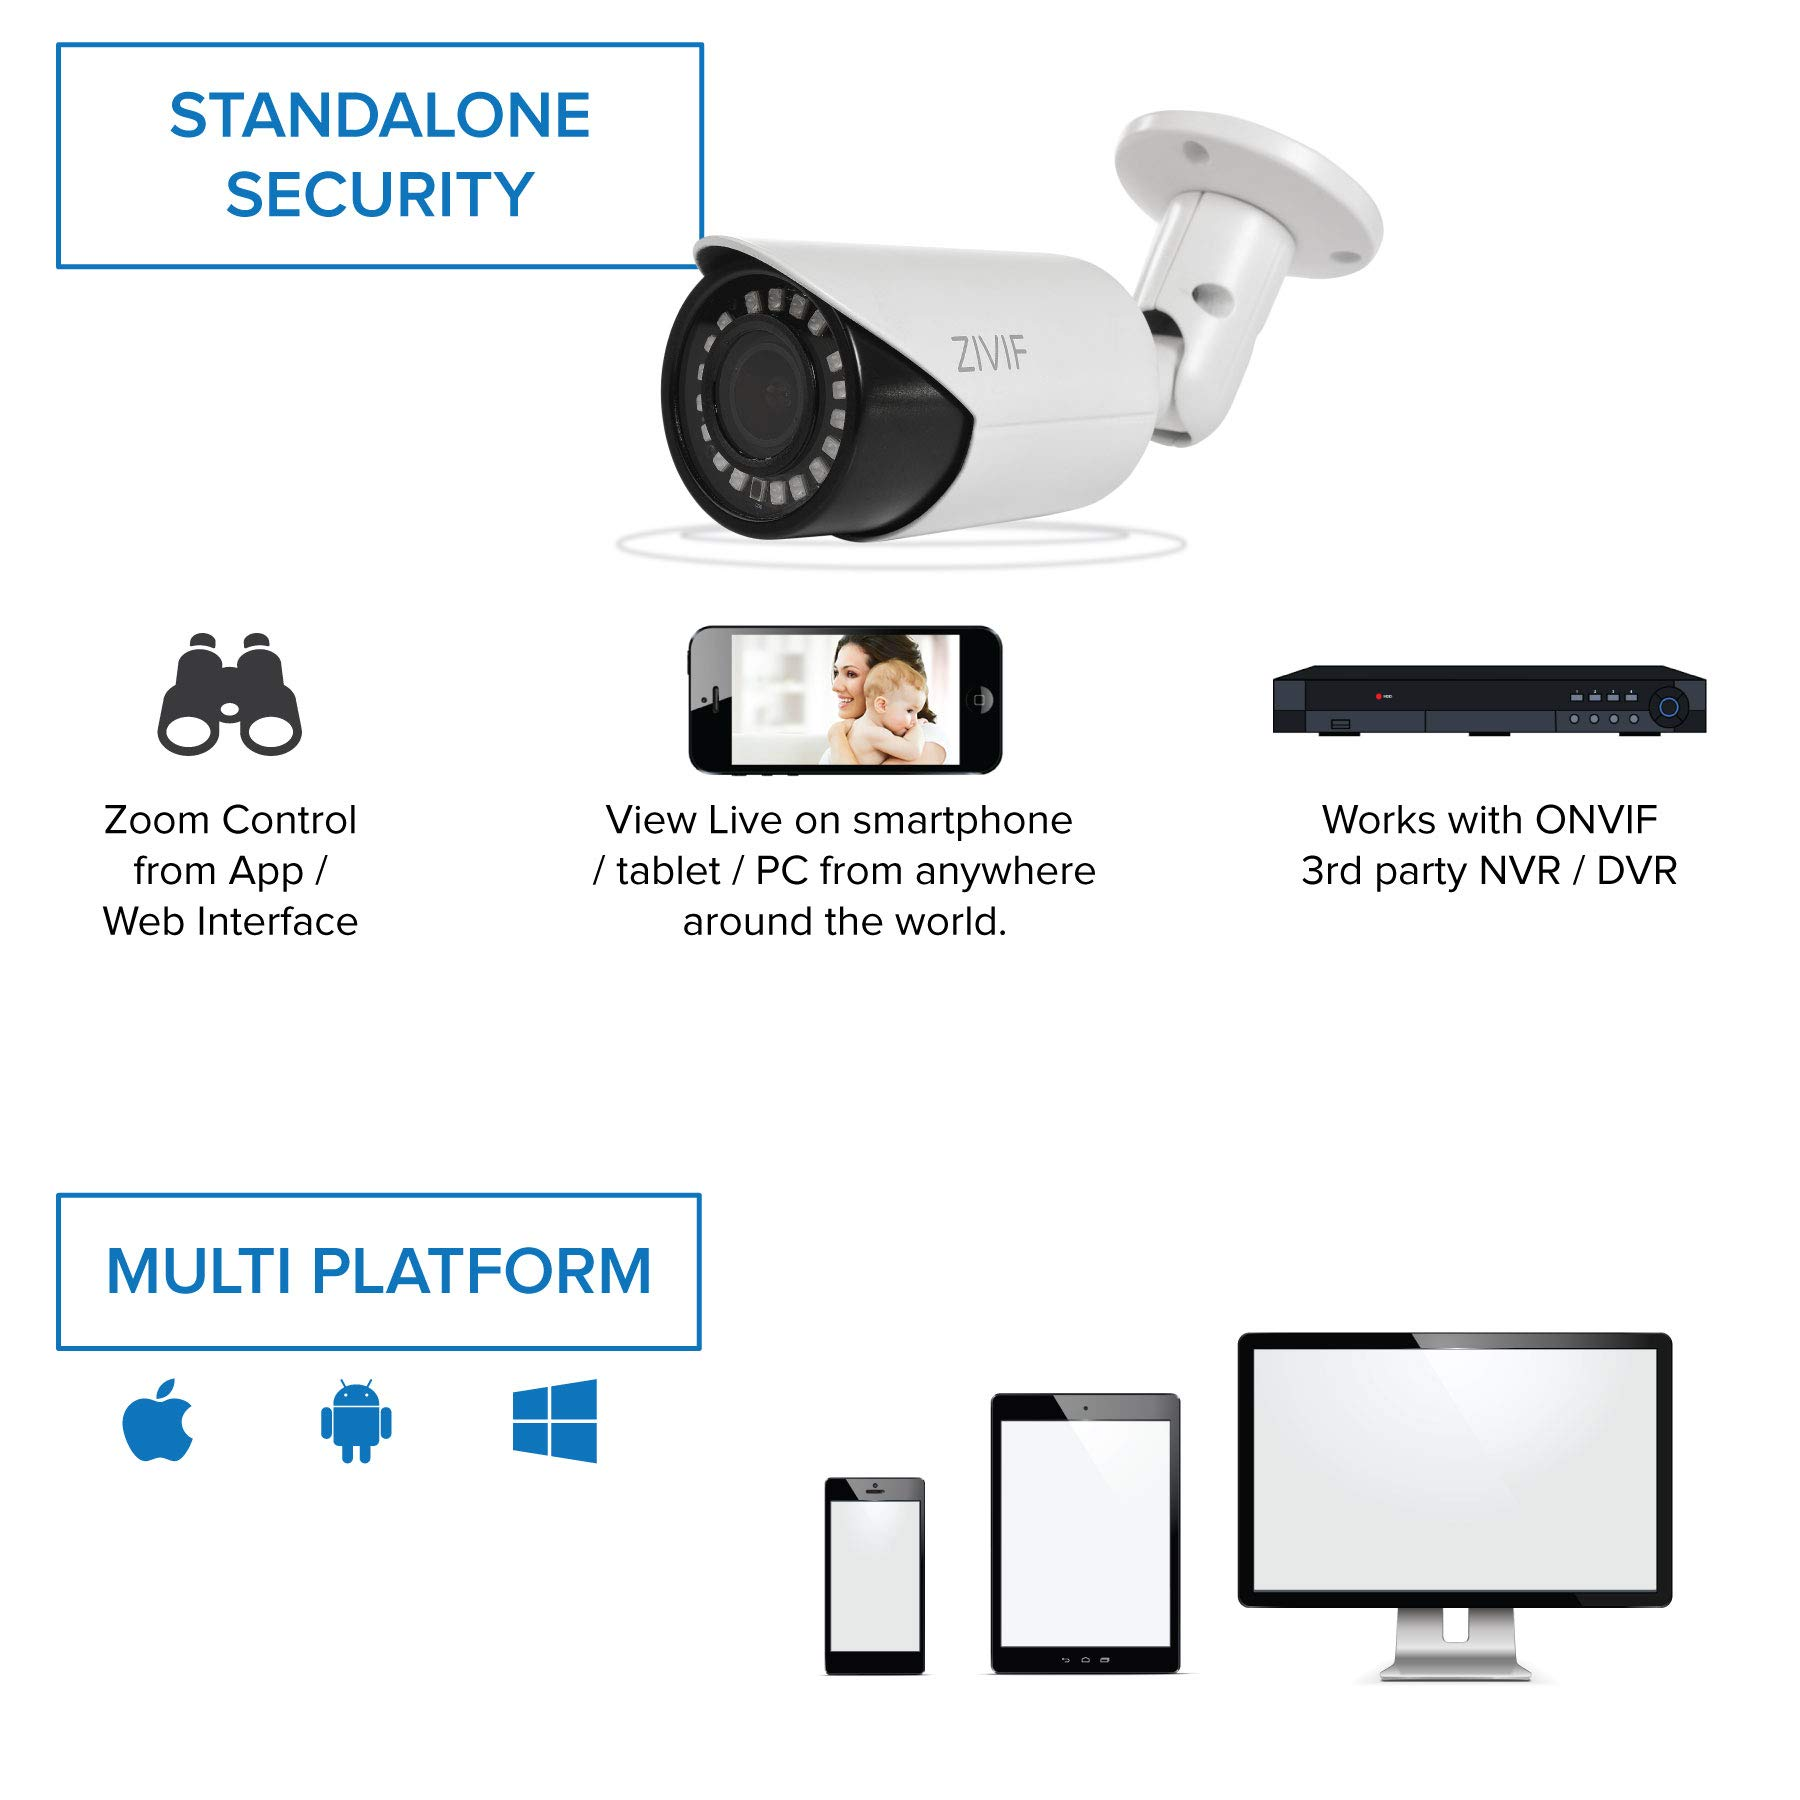 Zivif PoE Camera 4X Motorized Zoom - 1080P Bullet Outdoor Indoor IP Security Camera with Motion Detection & Night Vision